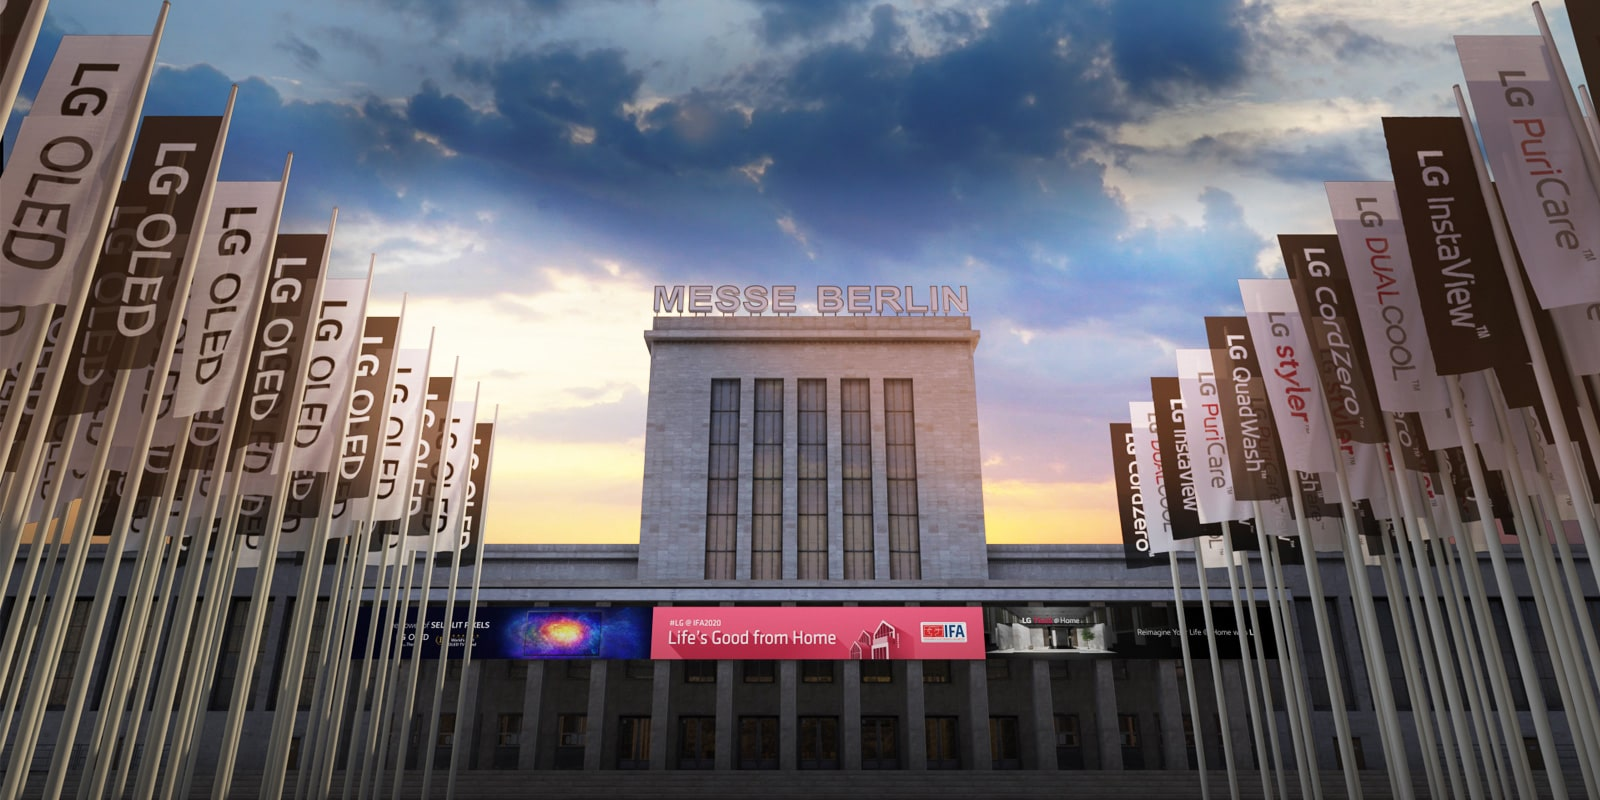 The Messe Berlin Sommergarten arena where IFA 2020 takes place is virtually visualized.